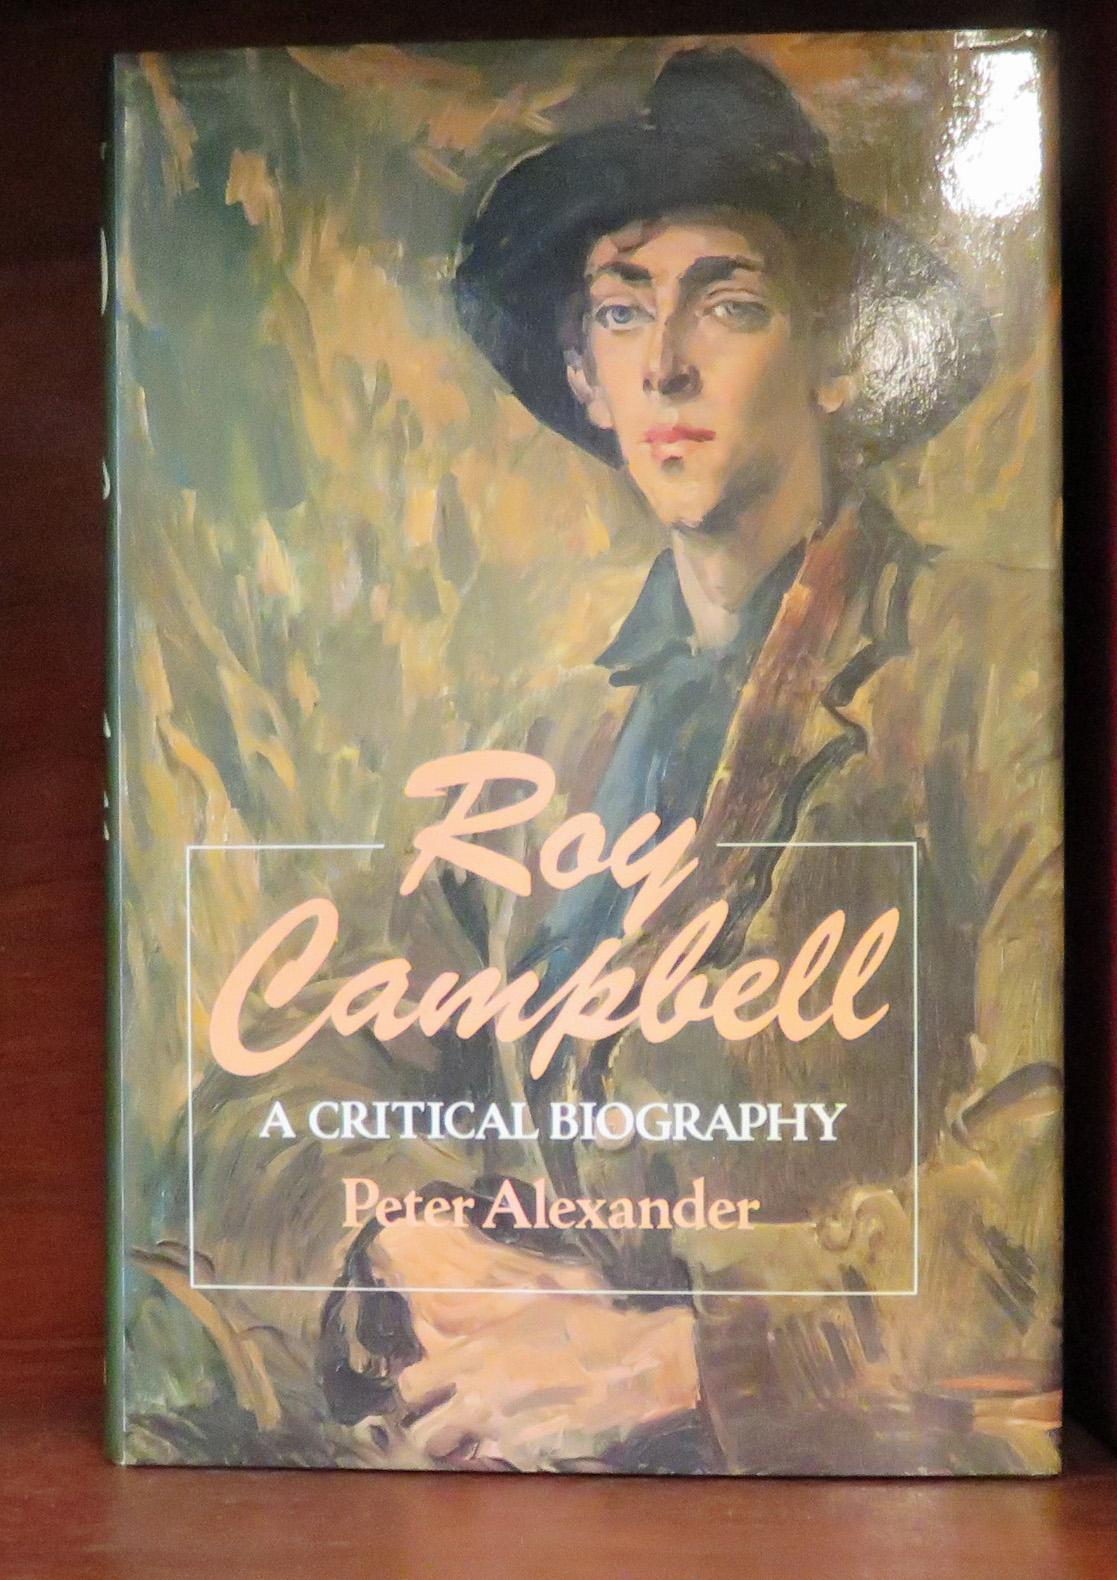 Roy Campbell A Critical Biography